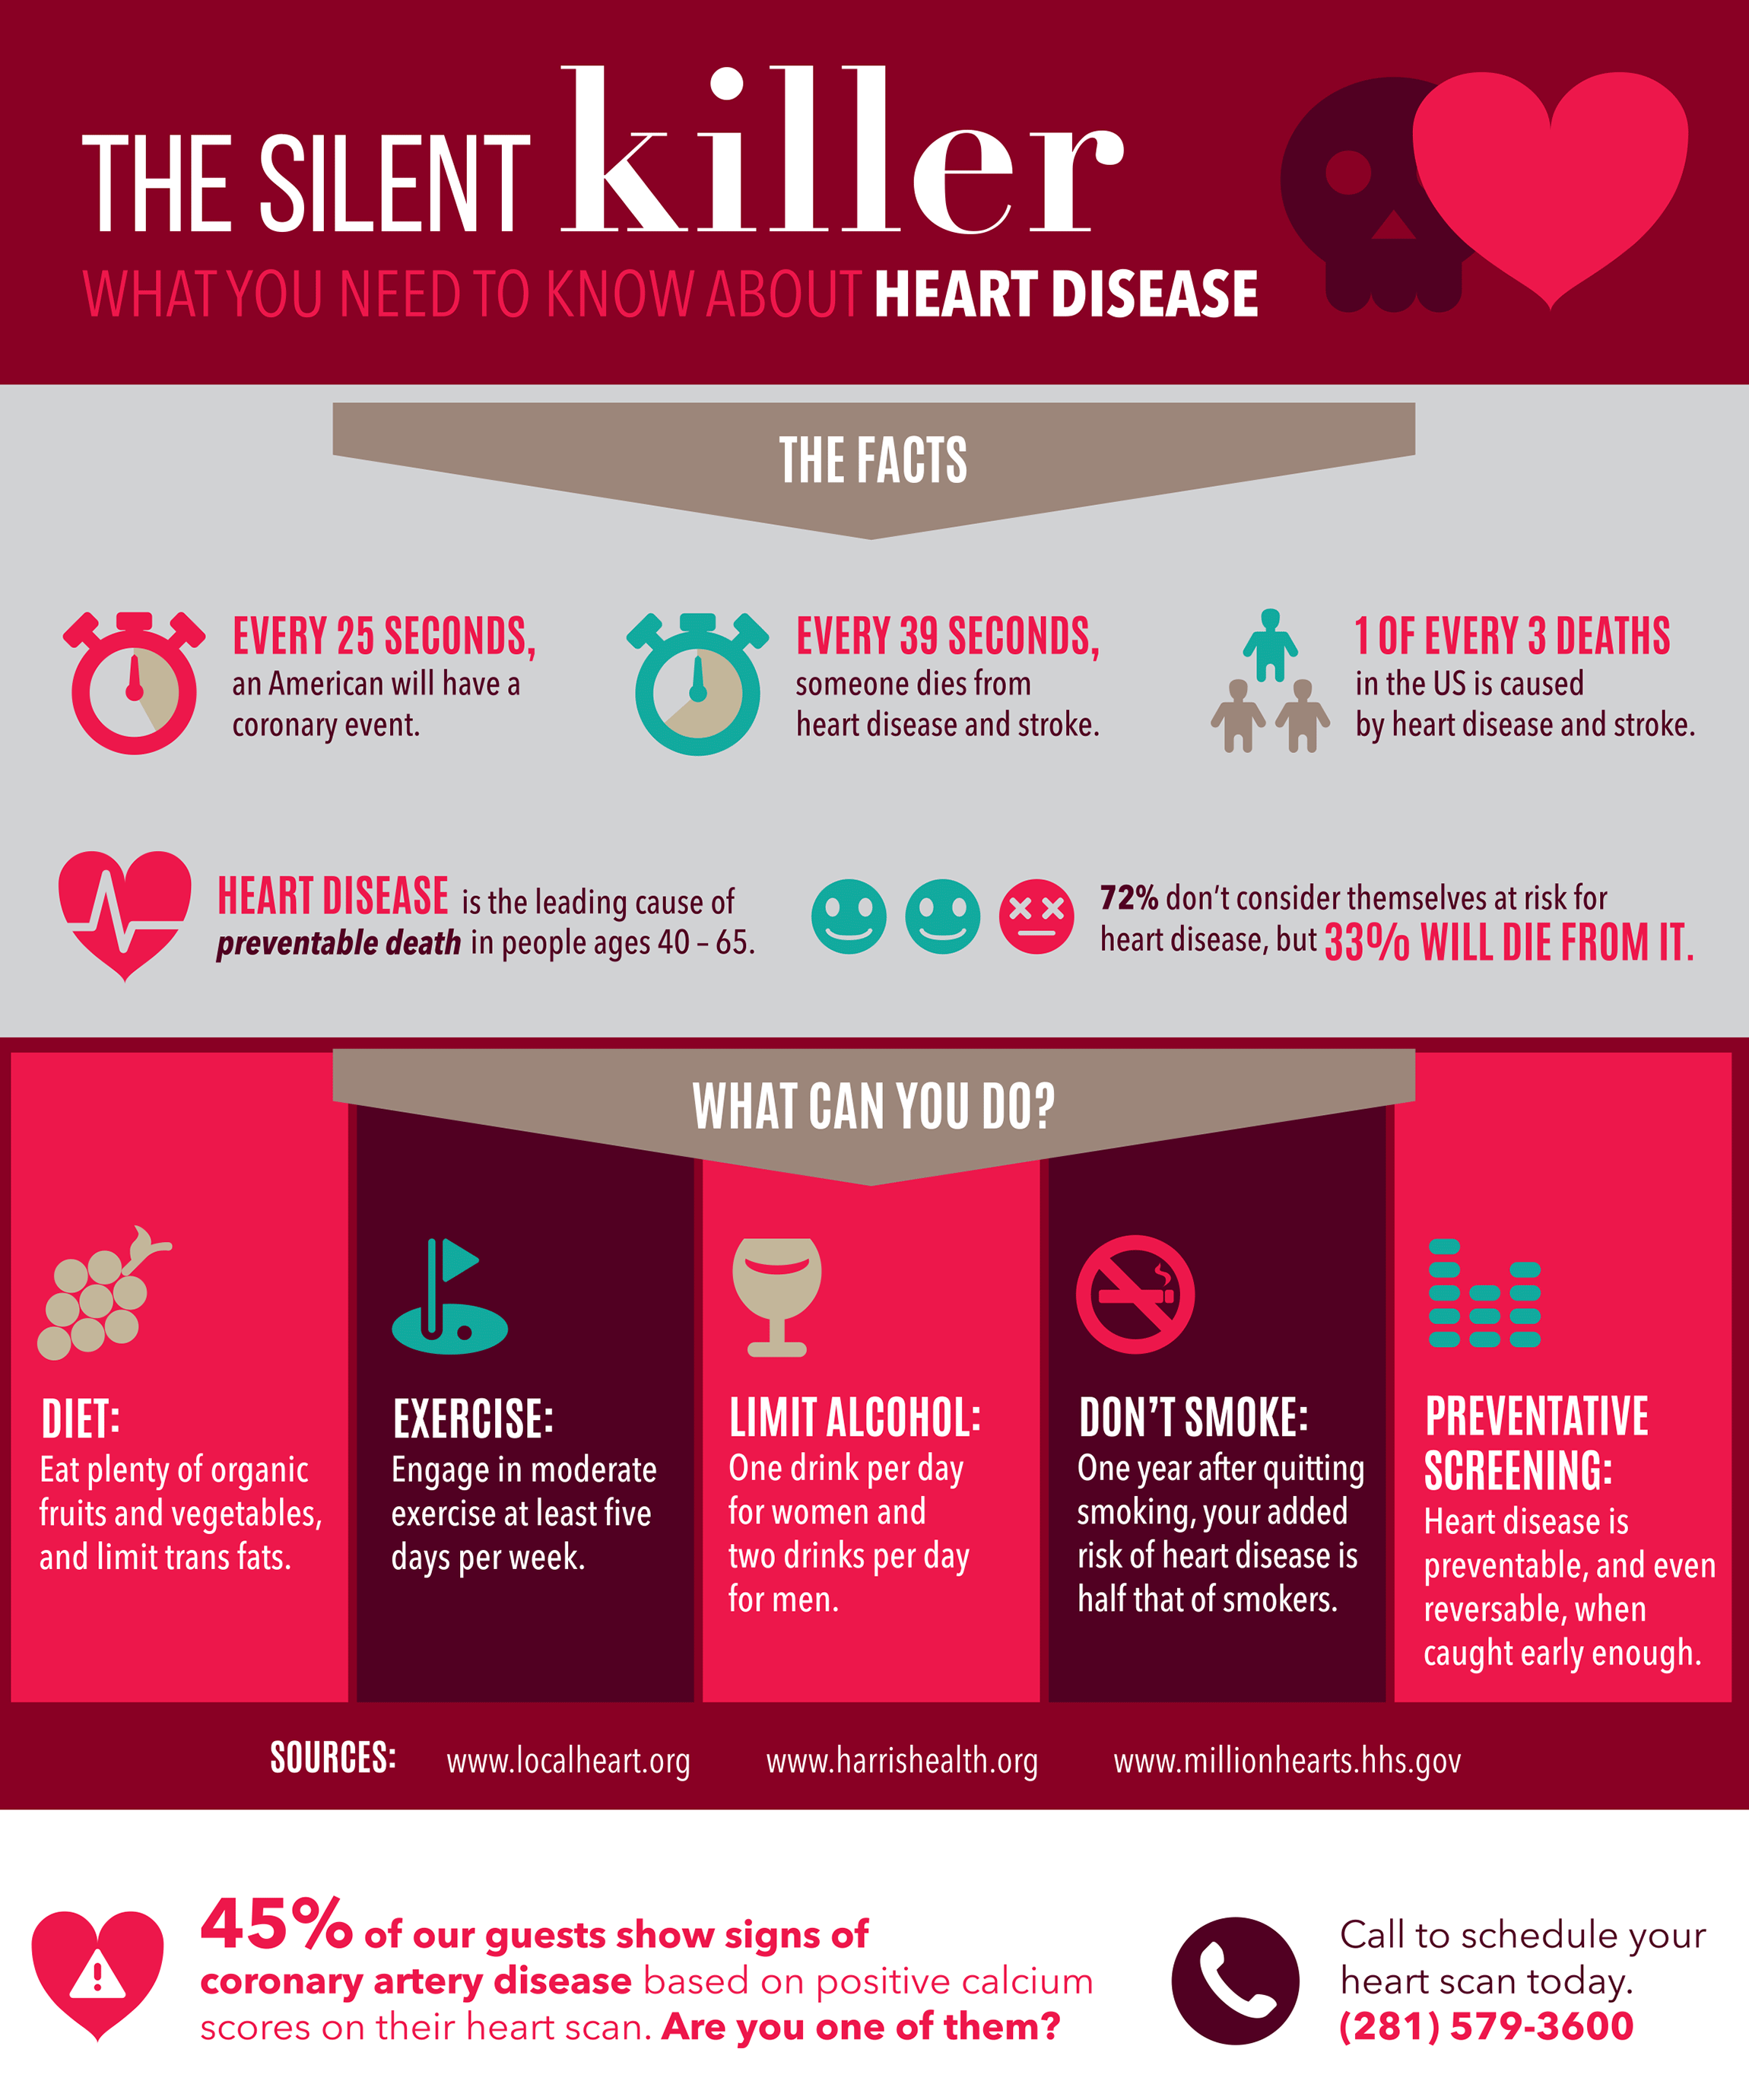 The Silent Killer: Heart Disease